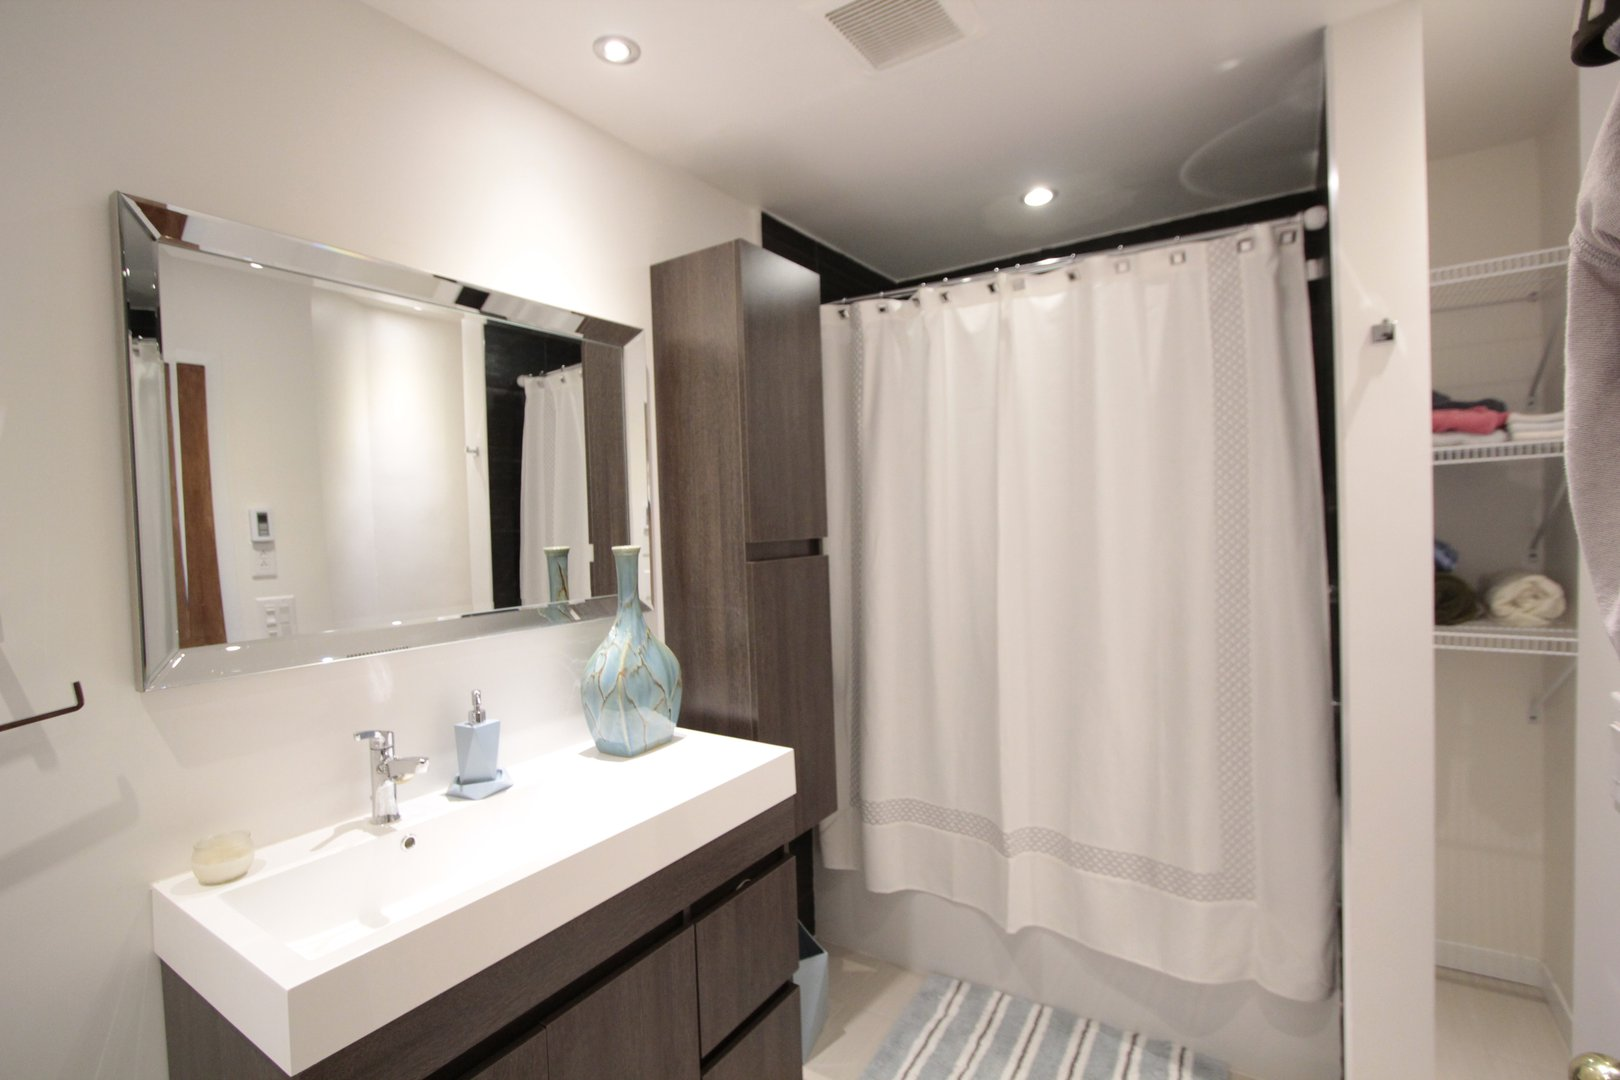 Apartment for rent at 4649 Avenue Clanranald, Montréal, QC. This is the bathroom.